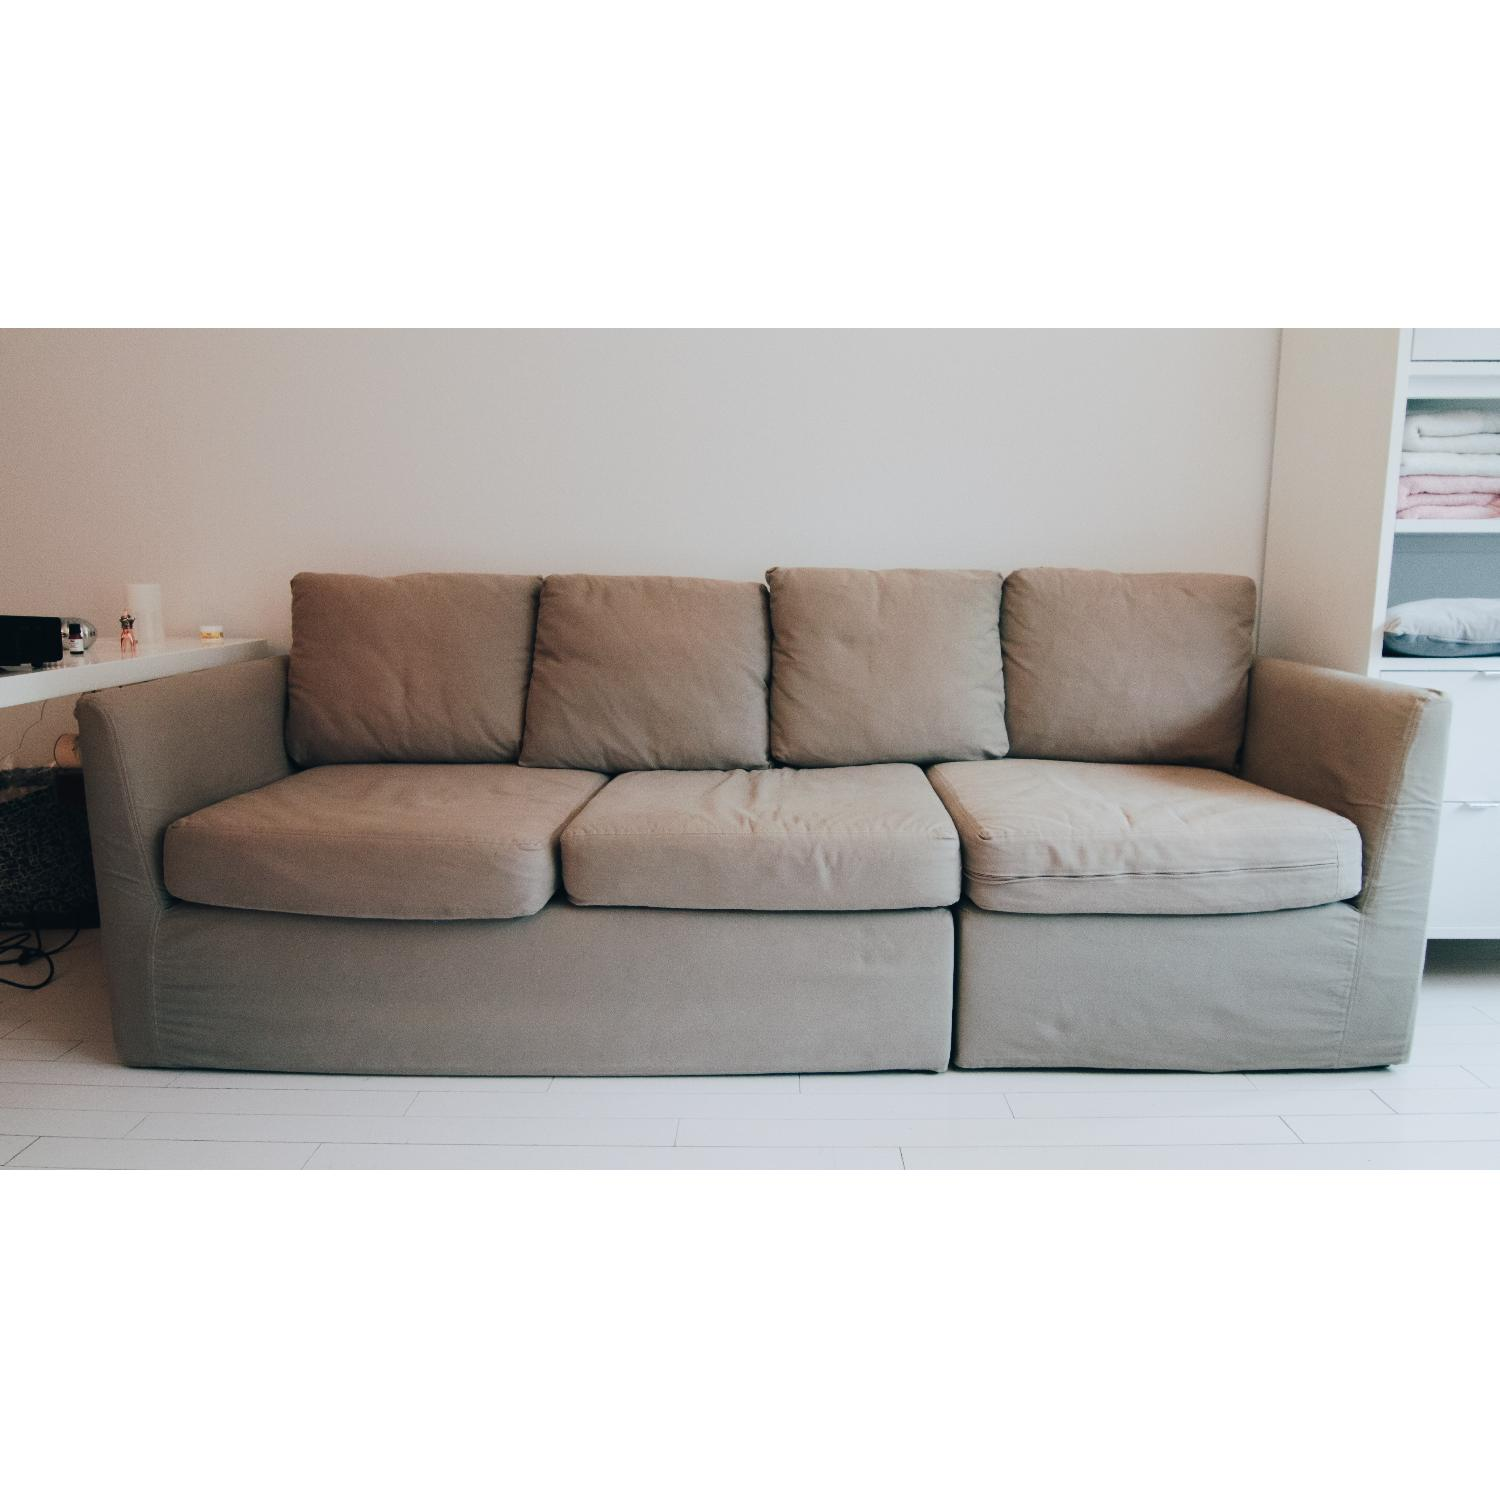 ... Mitchell Gold + Bob Williams 2 Piece Slipcovered Couch 0 ...